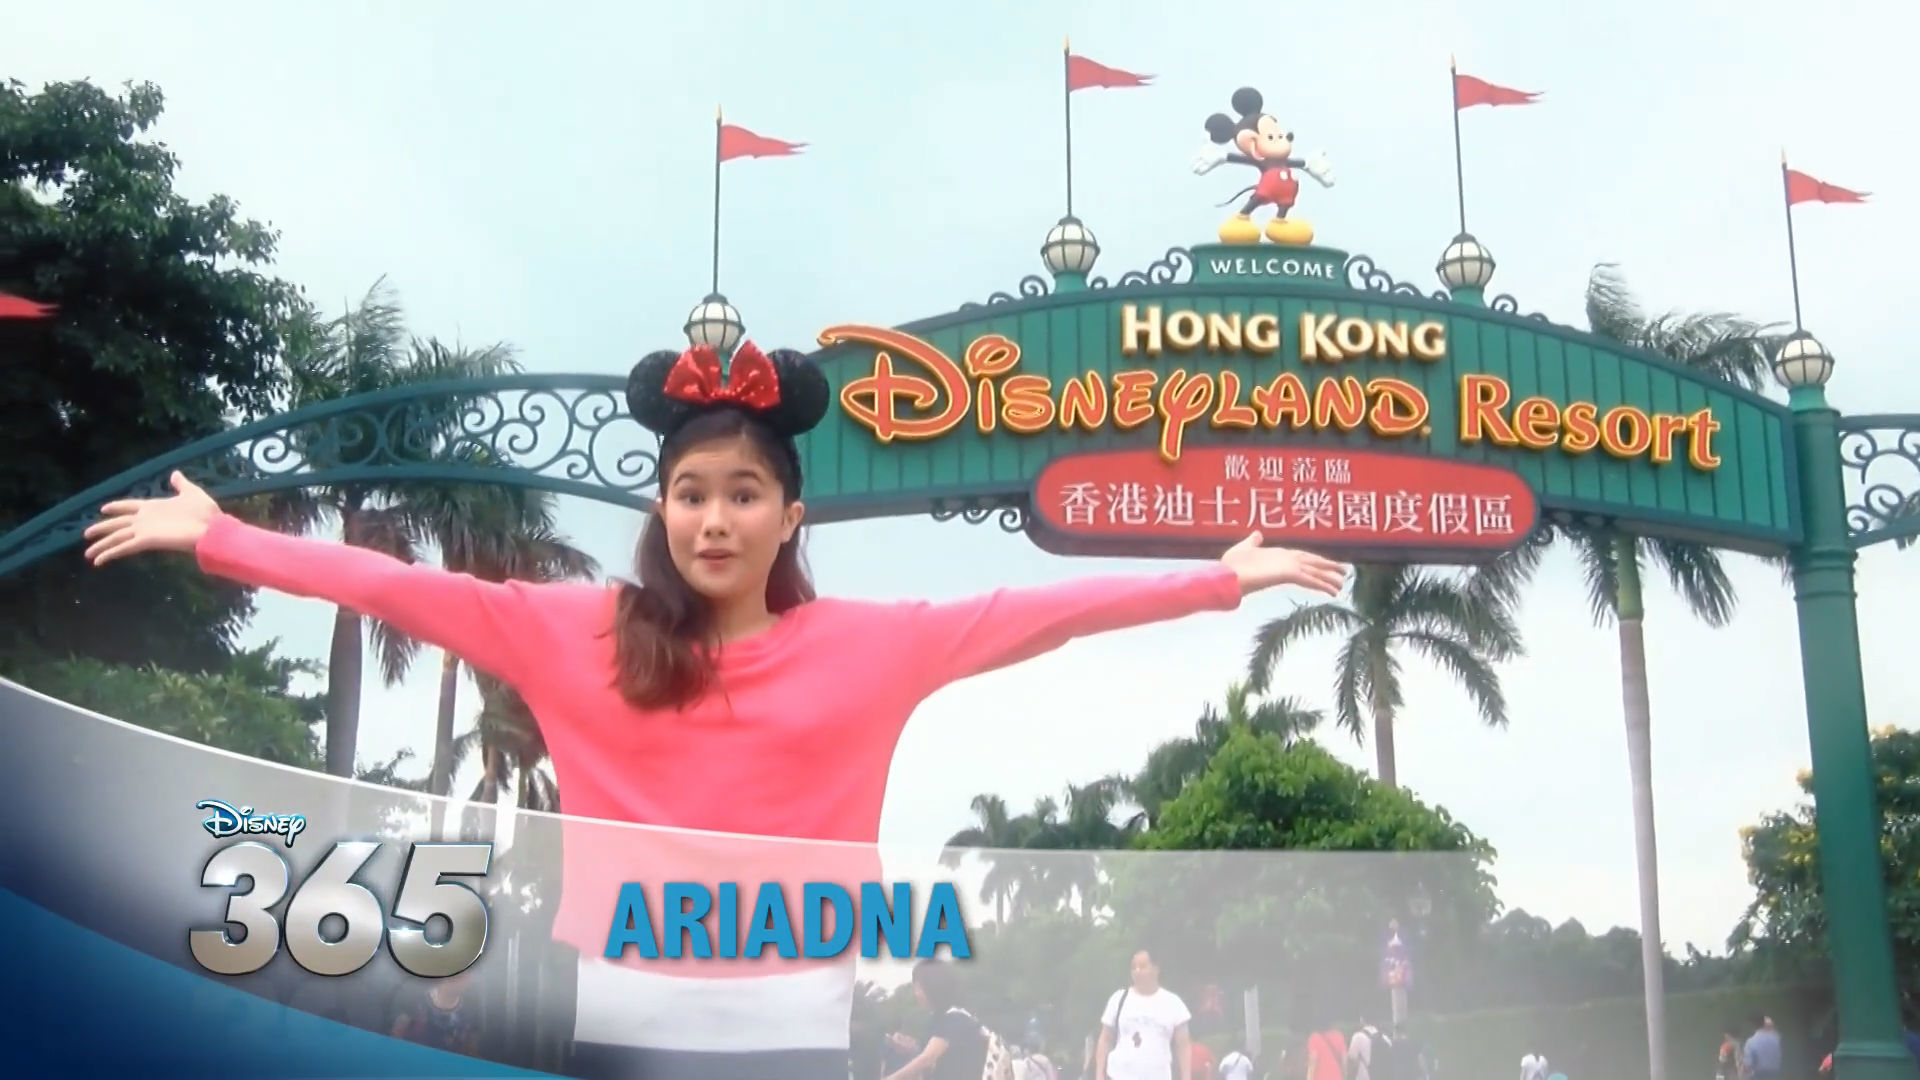 hong kong s ocean park taking on disney 906m75 hong kong's ocean park: taking on disney — revised ken mark revised this case under the supervision of professor roderick e white.